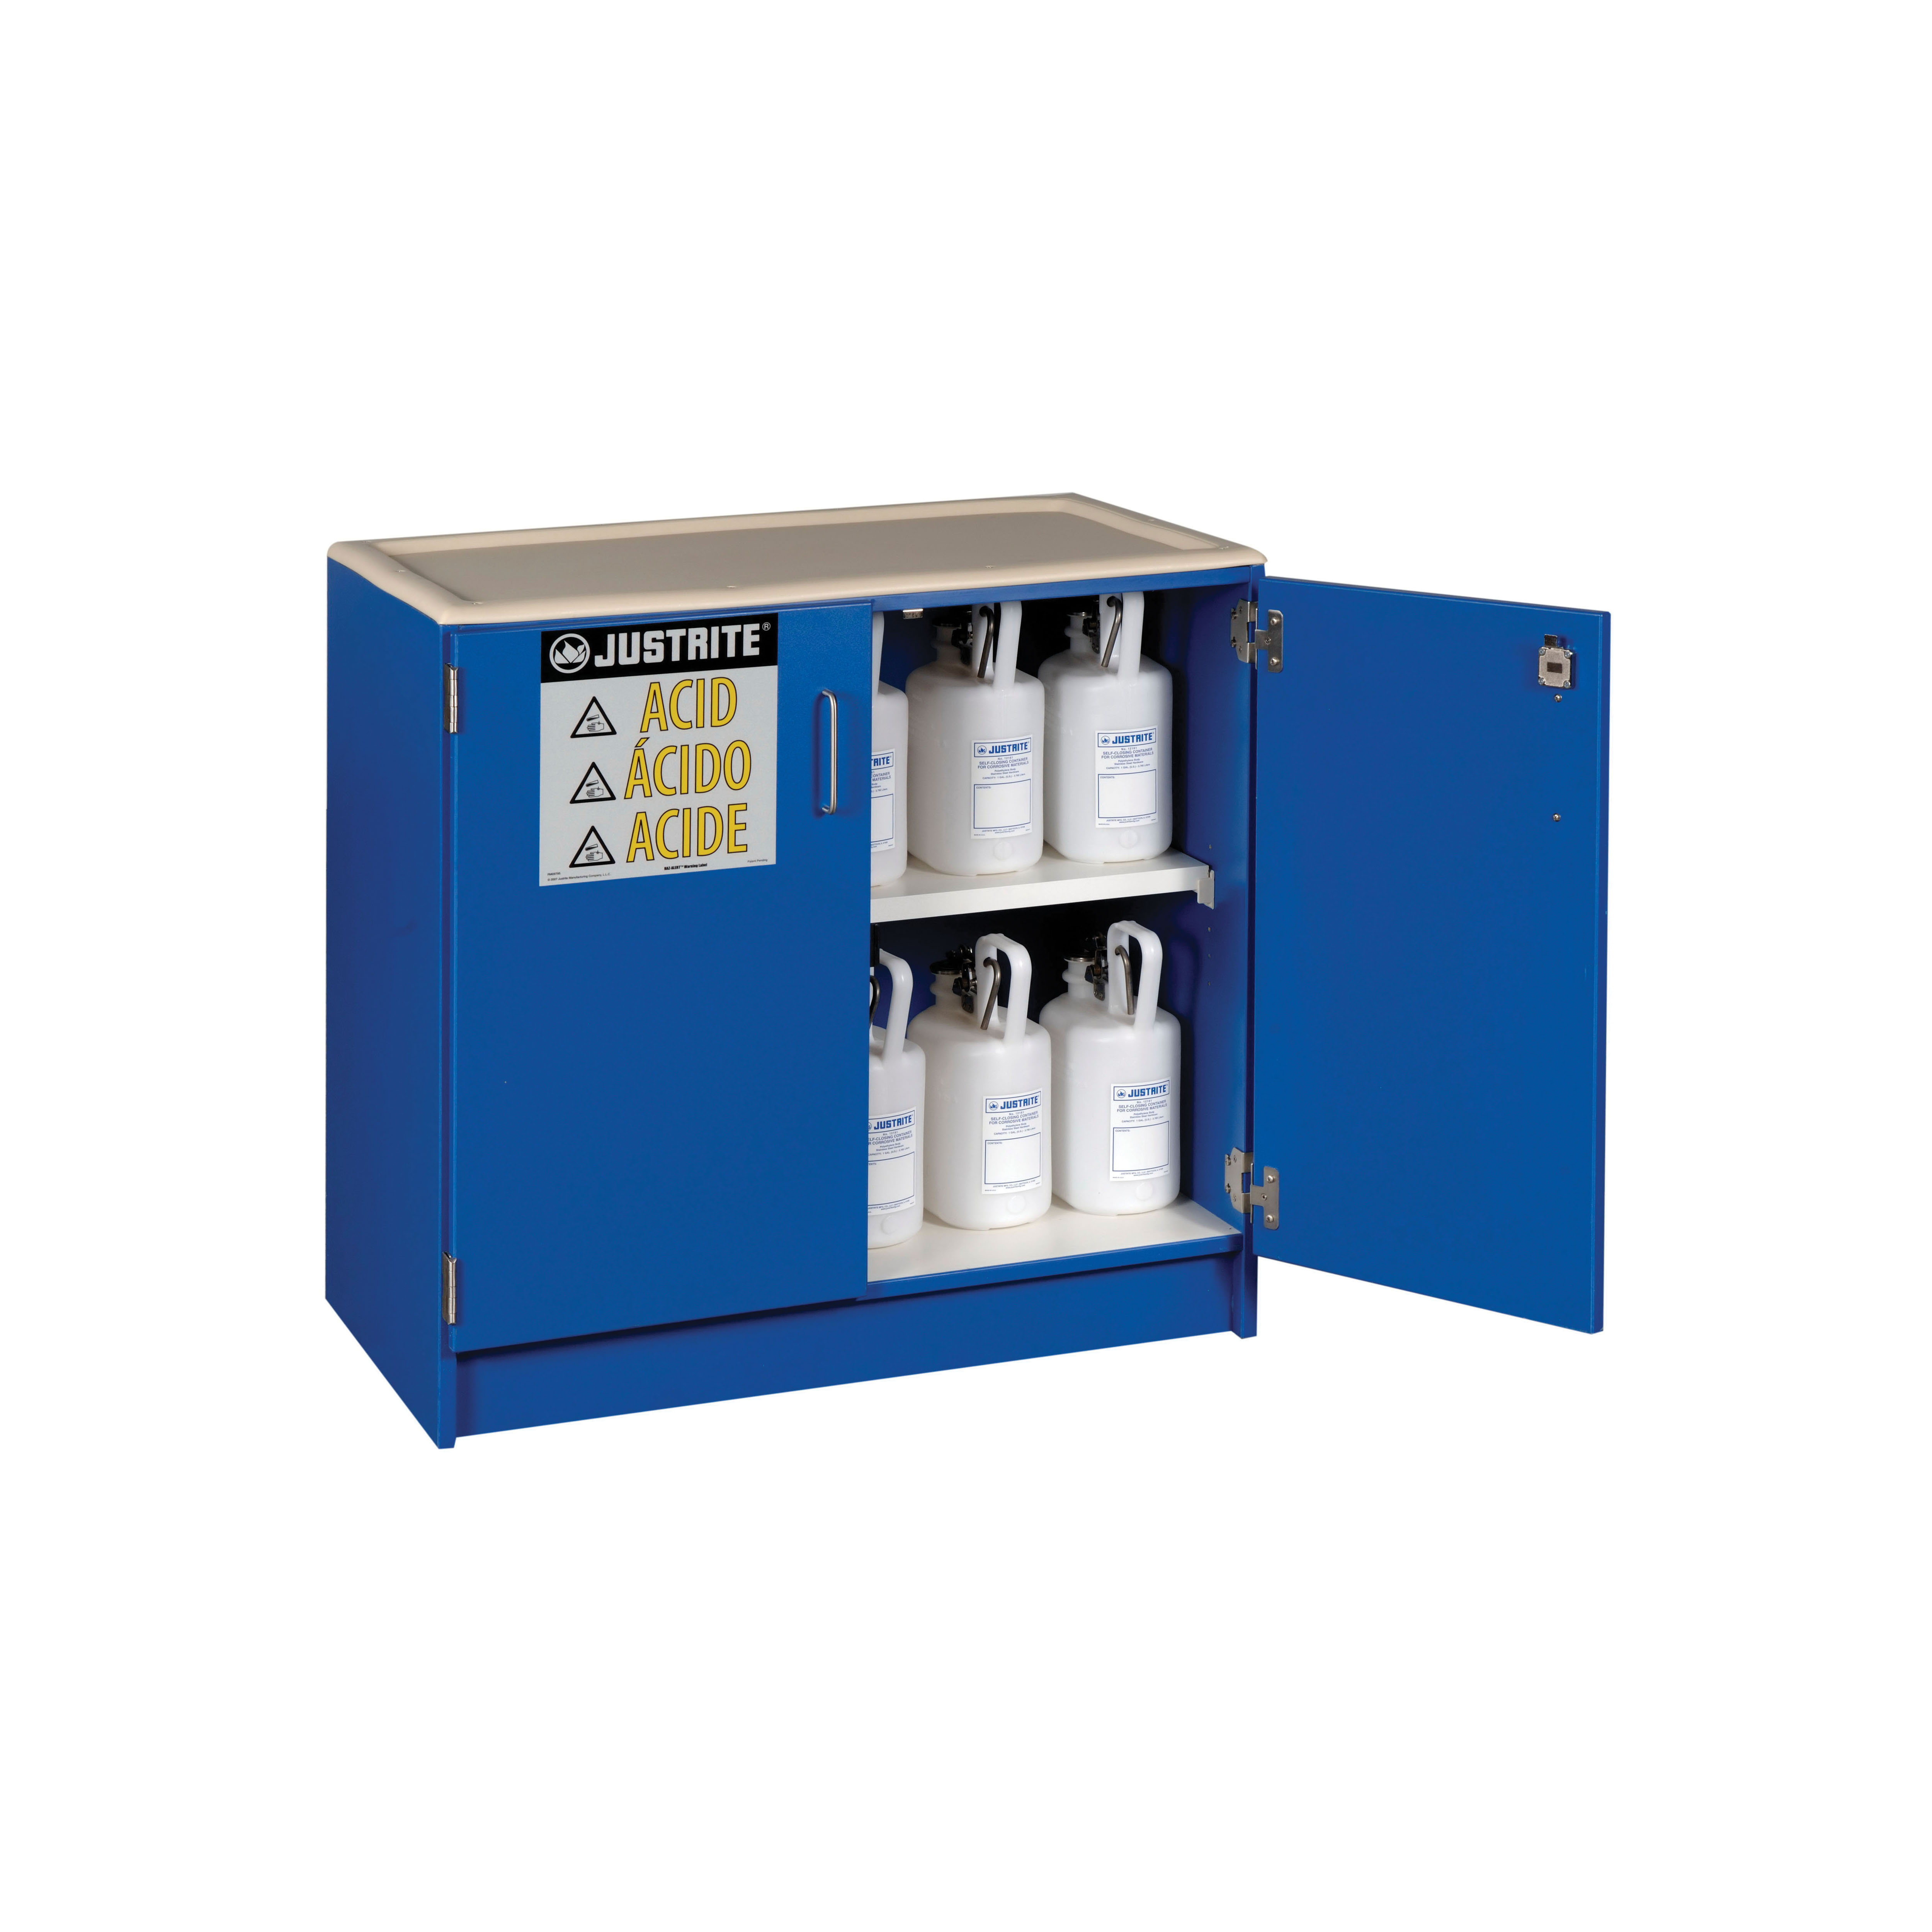 Justrite® 24140 Undercounter Corrosive Safety Cabinet, (36) 2.5 L Bottle Capacity, 35-3/4 in H x 36 in W x 22 in D, Manual Close Door, 2 Doors, 1 Shelves, Wood Laminate, Blue